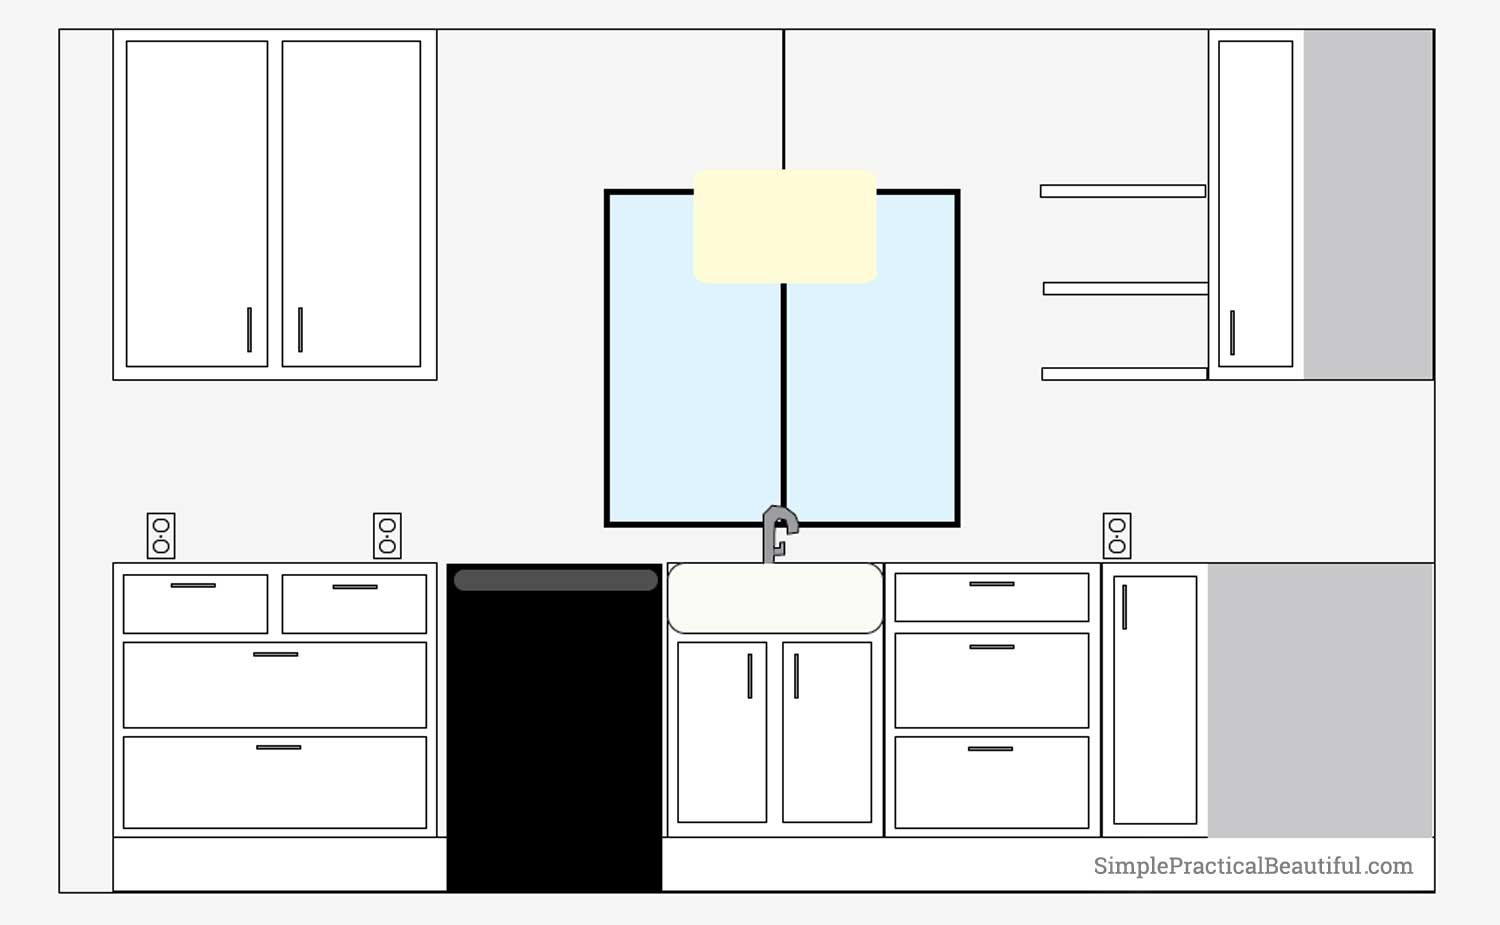 Bathroom Templates For Planning Use Adobe Illustrator To Plan A Room Layout Simple Practical